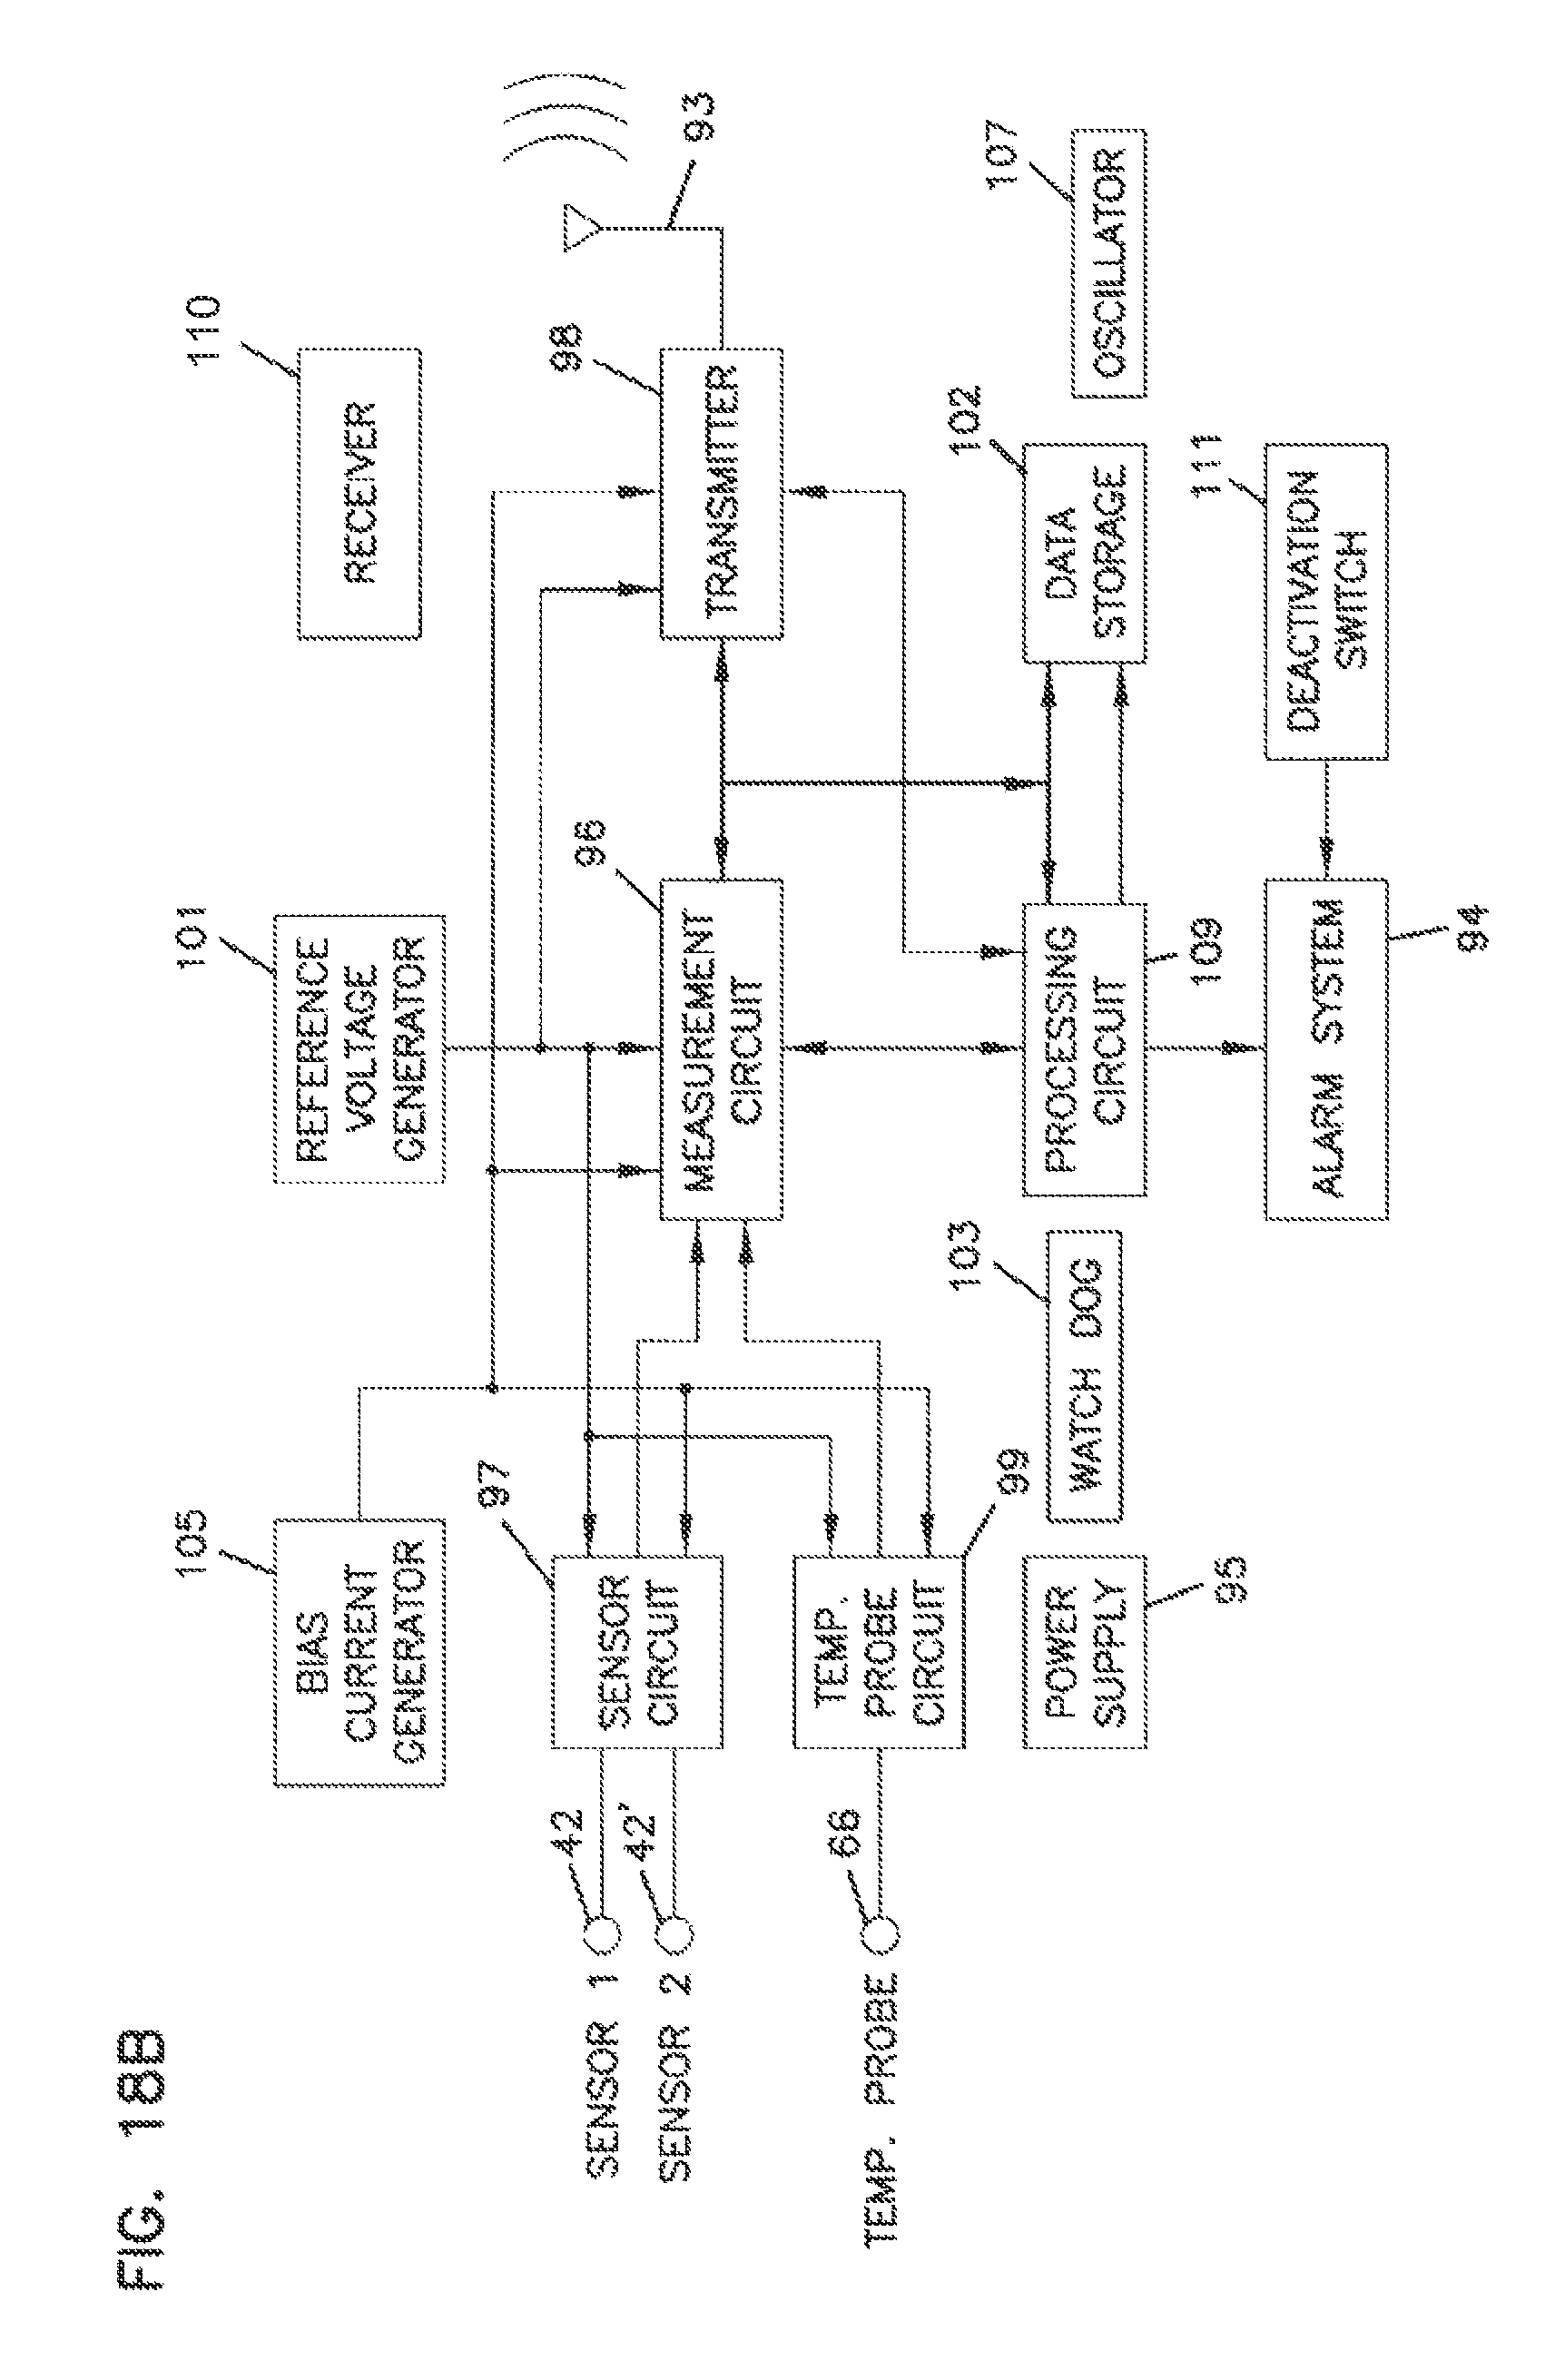 Us9014773b2 Analyte Monitoring Device And Methods Of Use Google Far West Cathodic Rectifier Wiring Diagram Patents